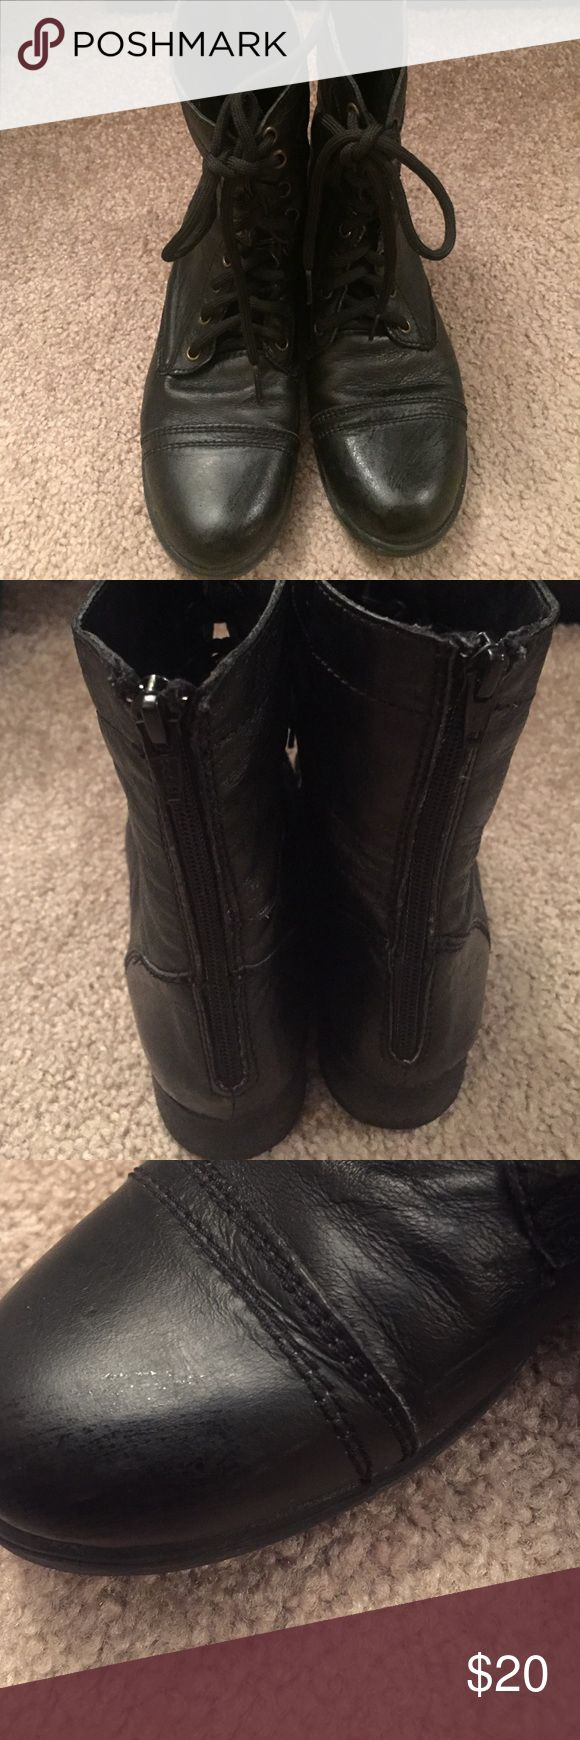 Steve Madden Black Boots, sz 8 Super cute utility style boots, sz 8. Some small scratches as shown in pictures 3 & 4! Steve Madden Shoes Ankle Boots & Booties